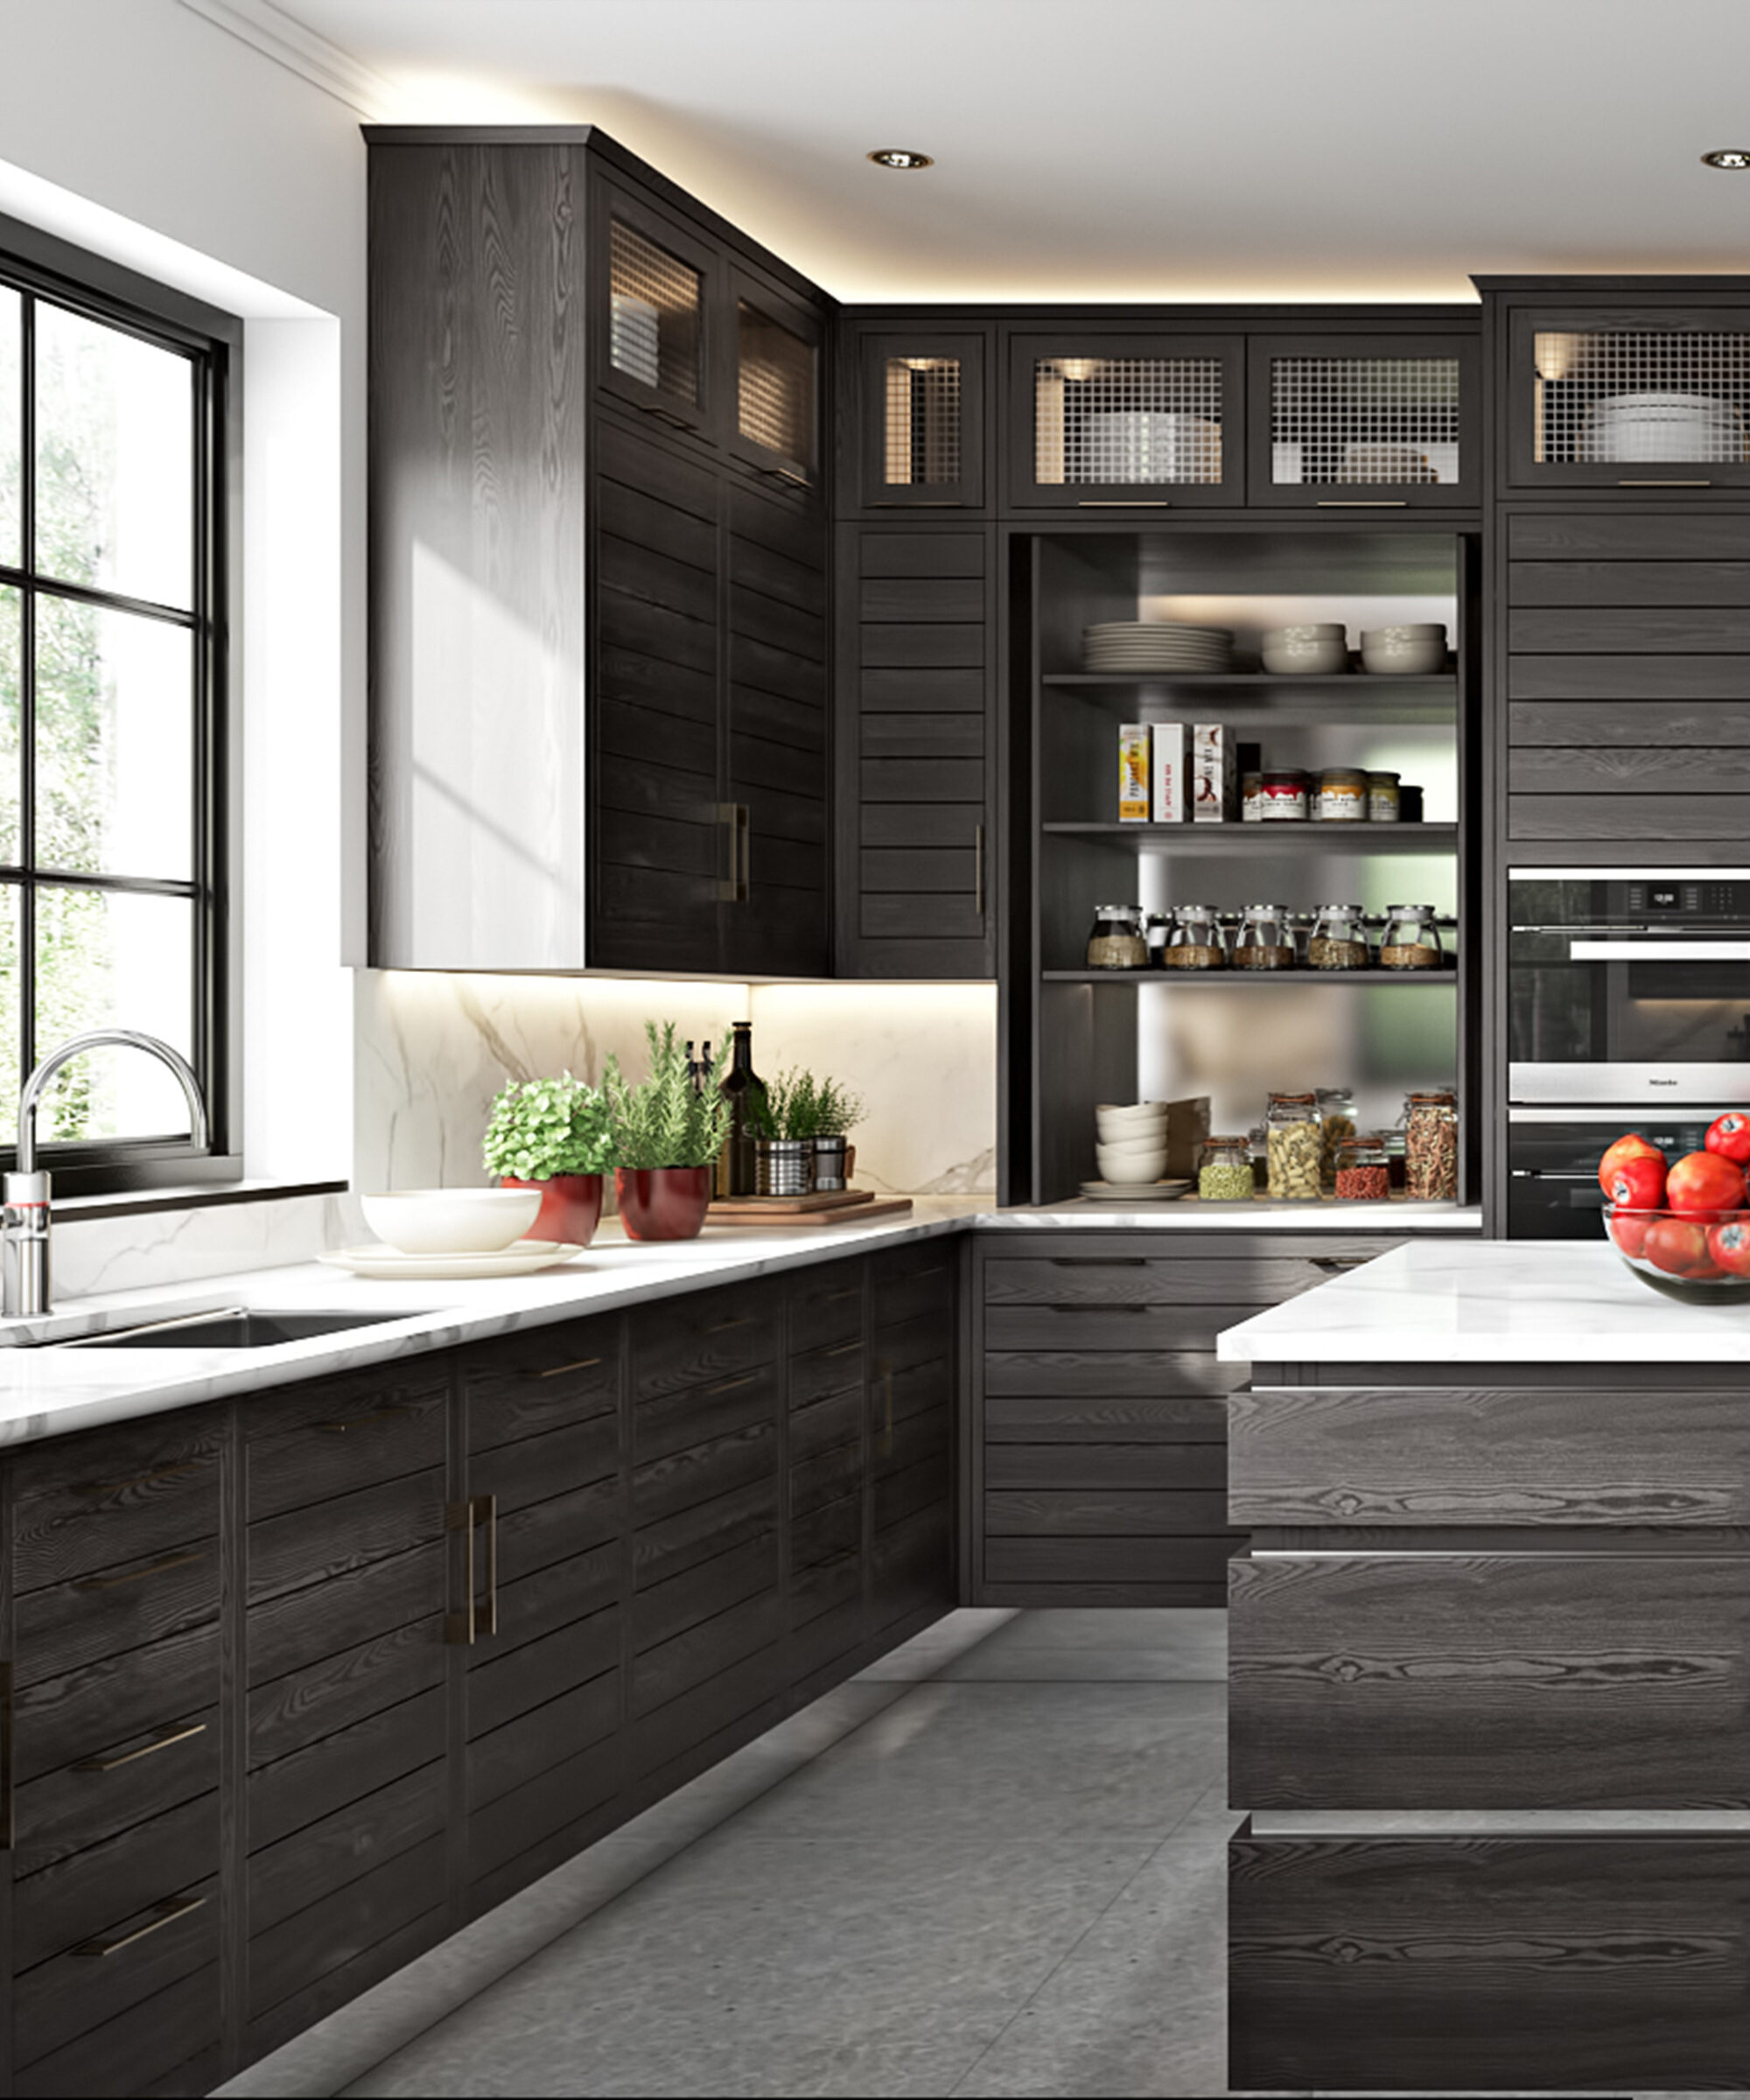 A Naples collection kitchen pantry by Smallbone